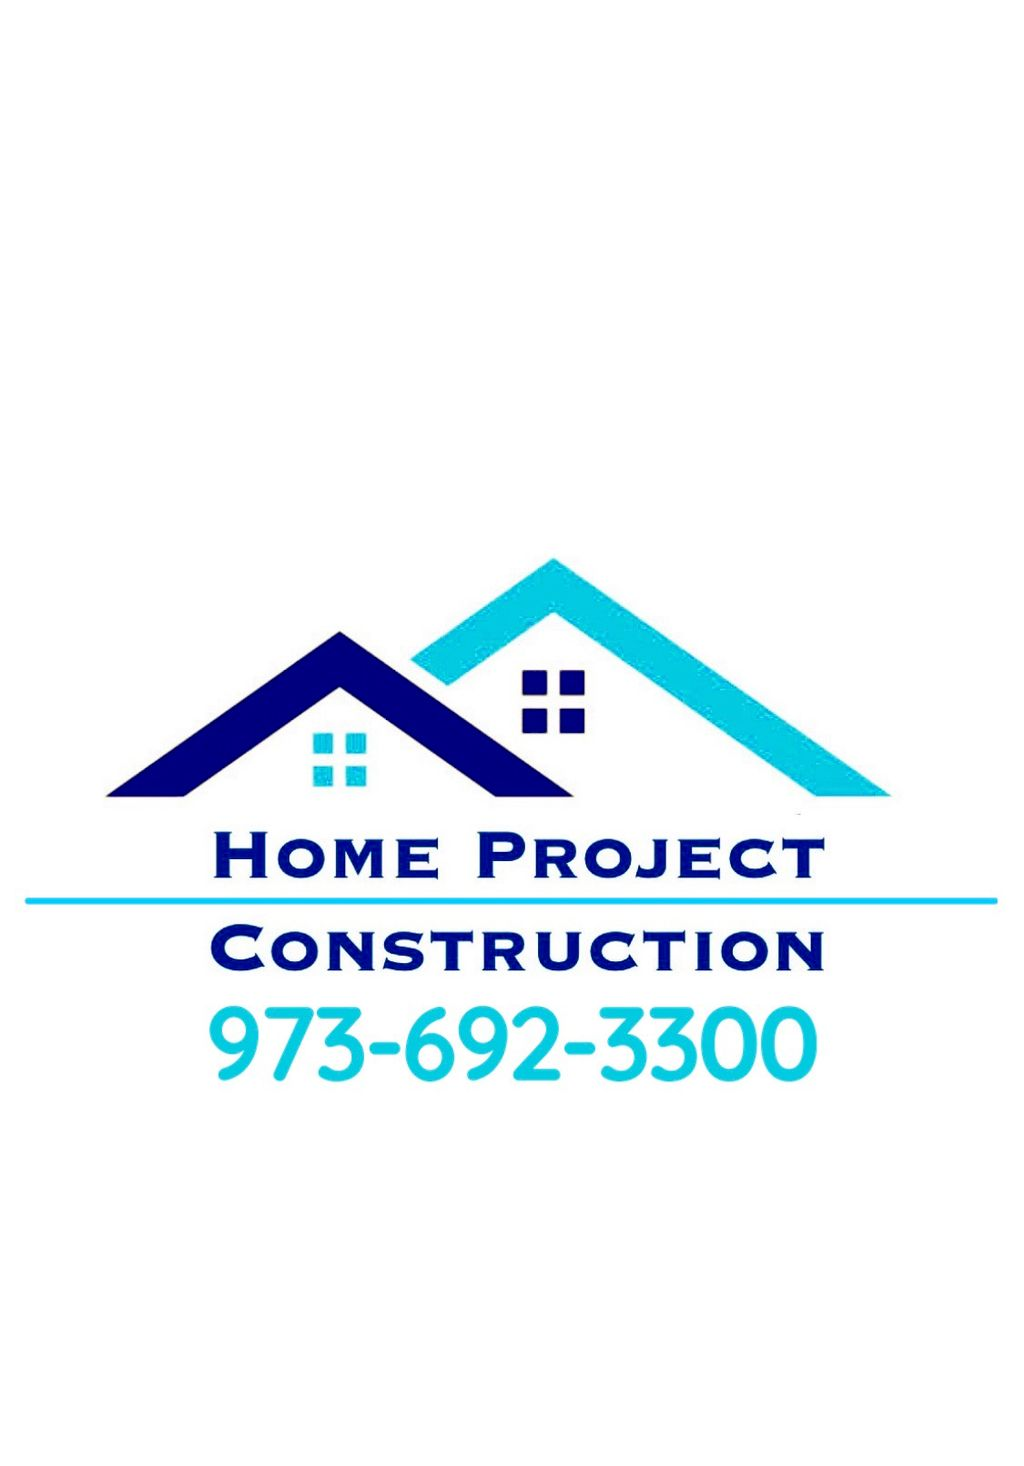 Home Project Construction